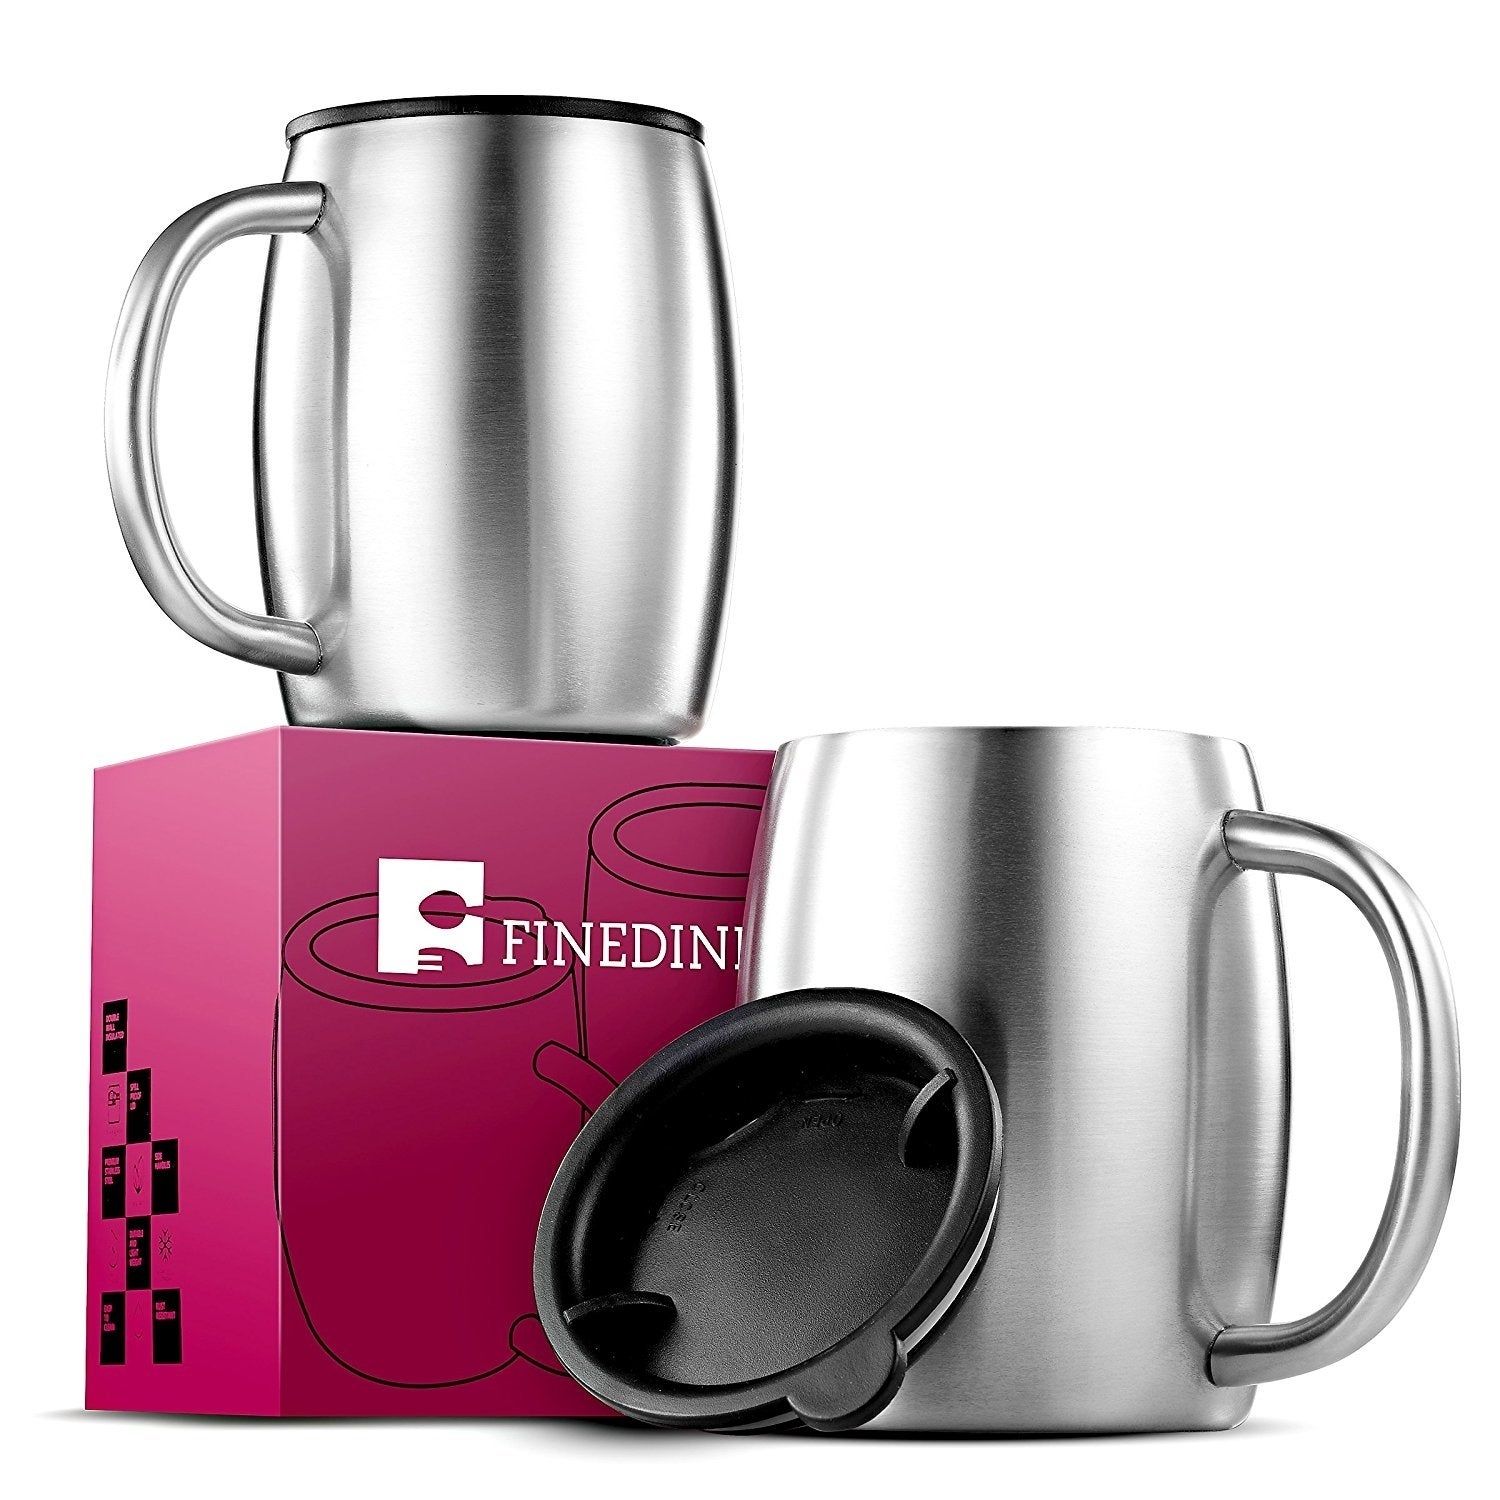 Double Wall 18 8 Stainless Steel Coffee Mugs With Spill Resistant Lids Set Of 2 Insulated Travel Mug Handle Free Shipping On Orders